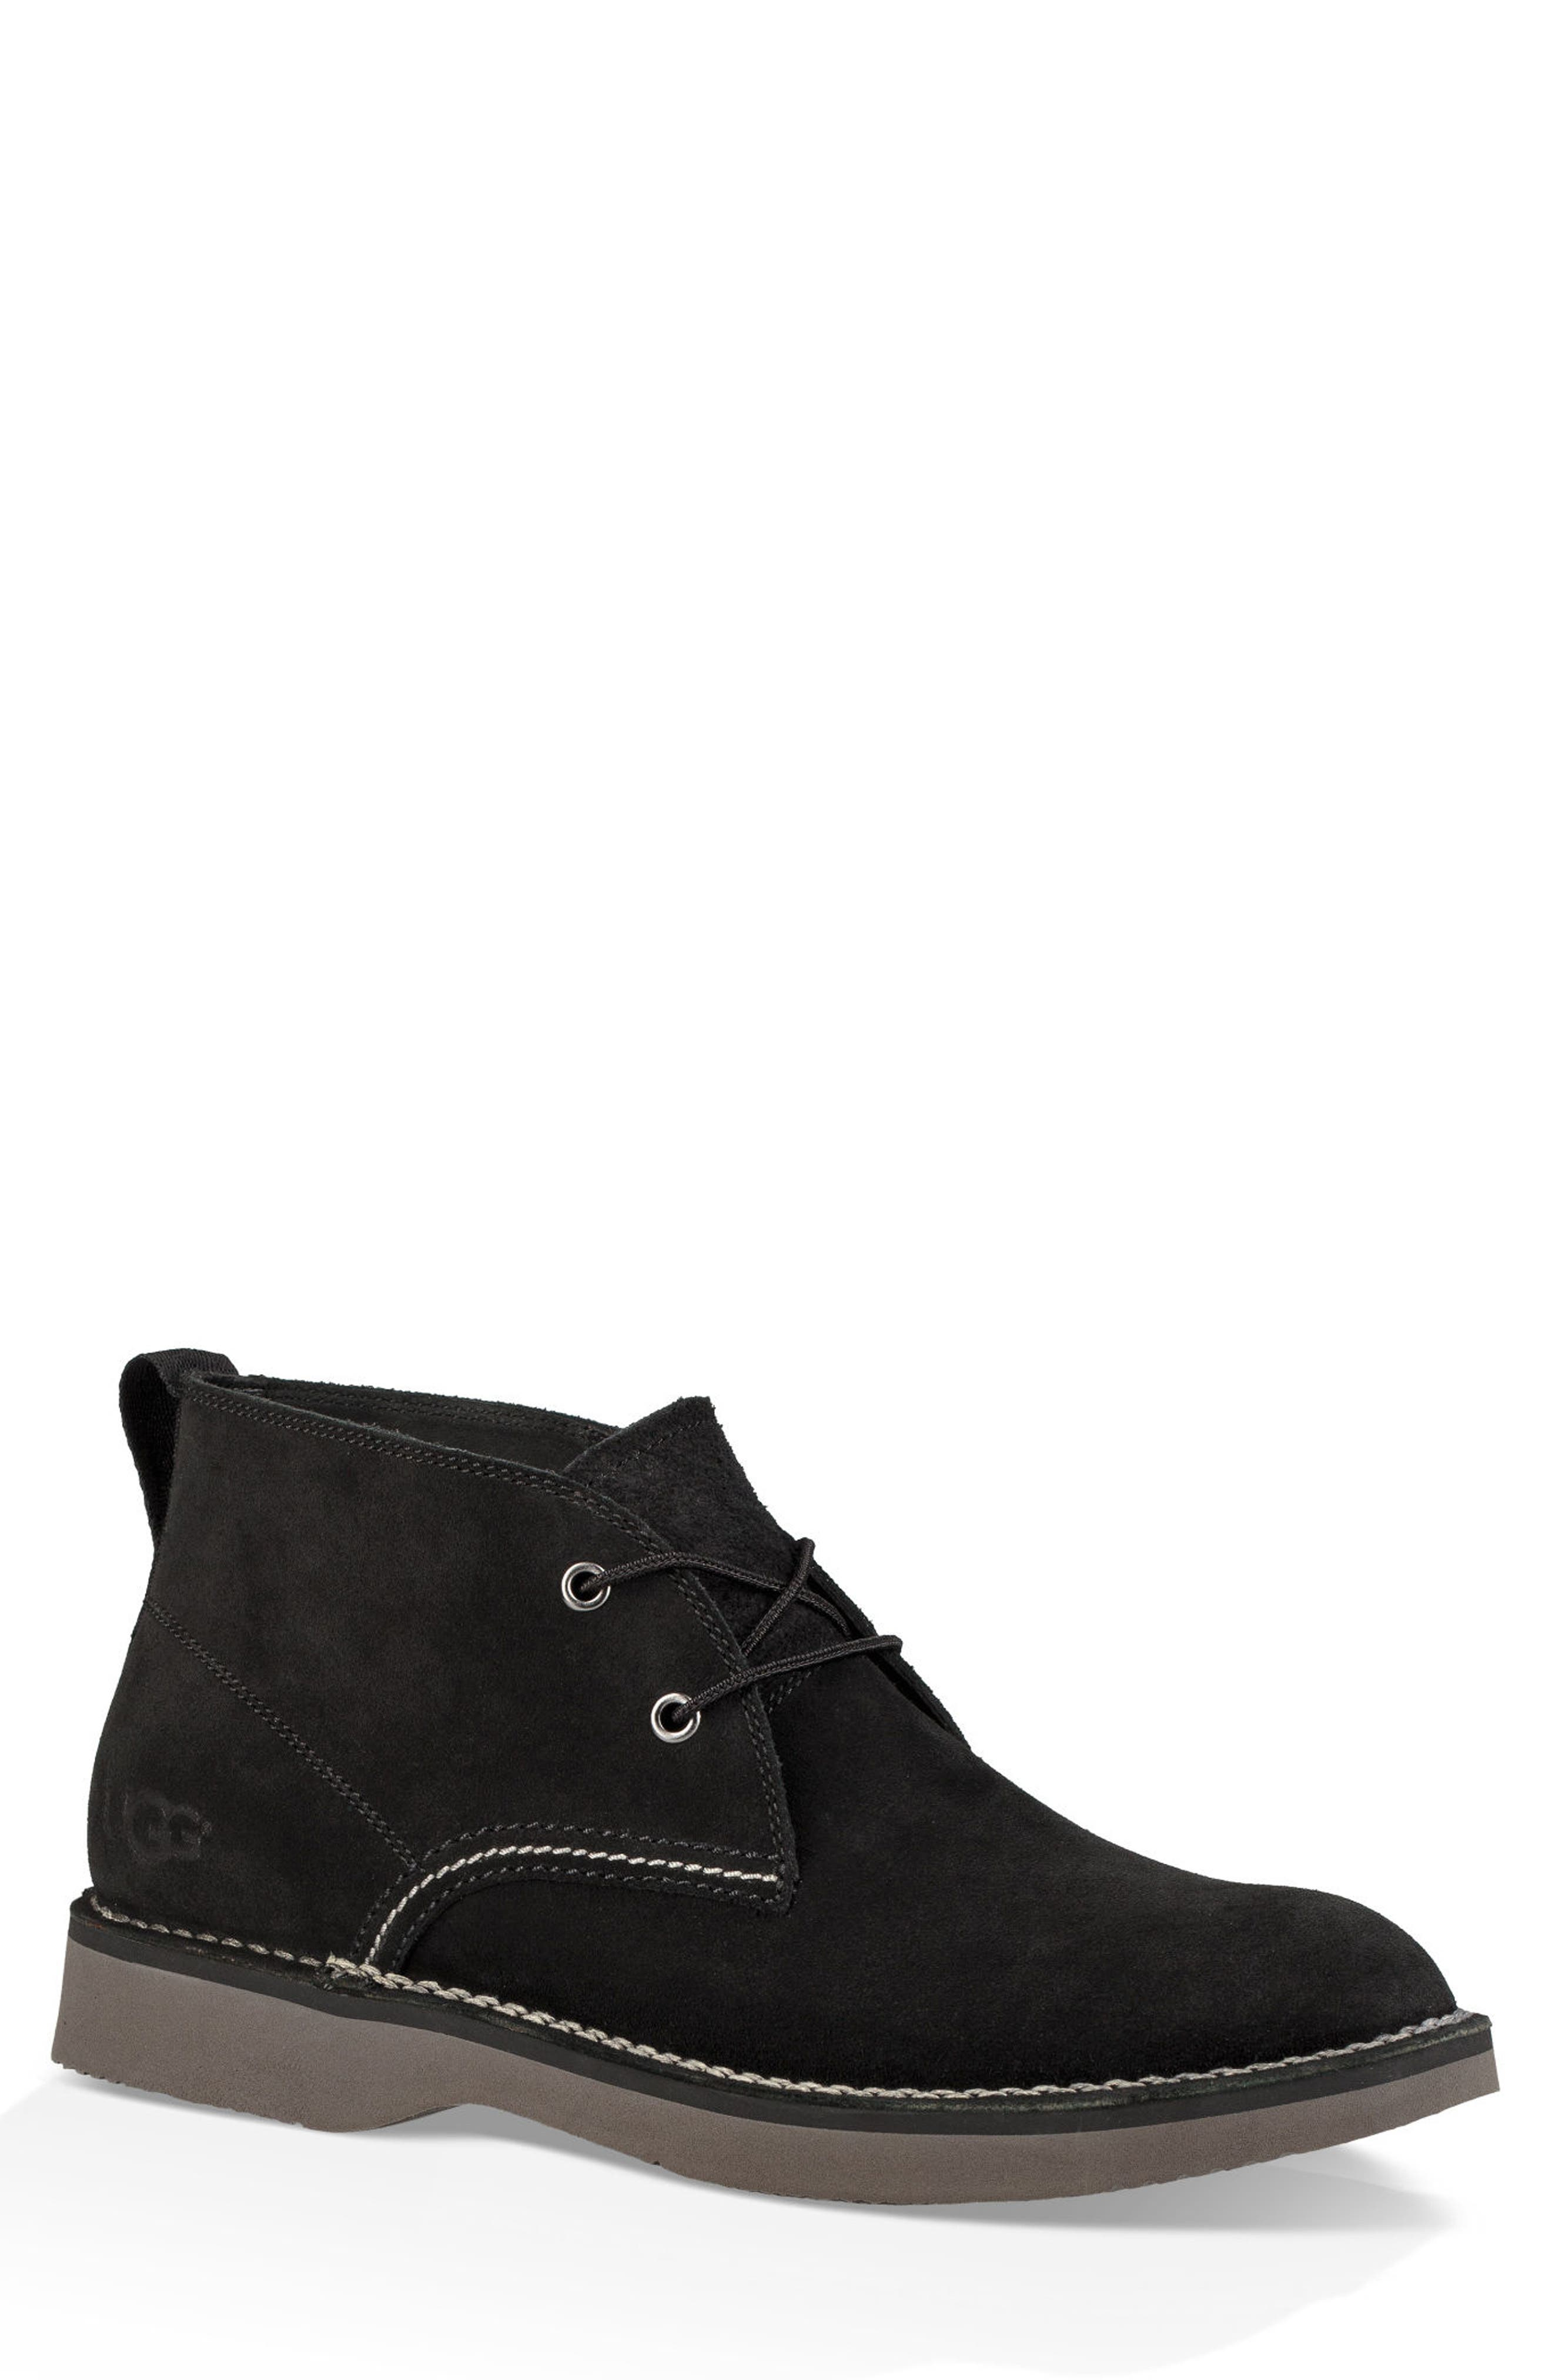 Camino Water Resistant Chukka Boot,                             Main thumbnail 1, color,                             BLACK